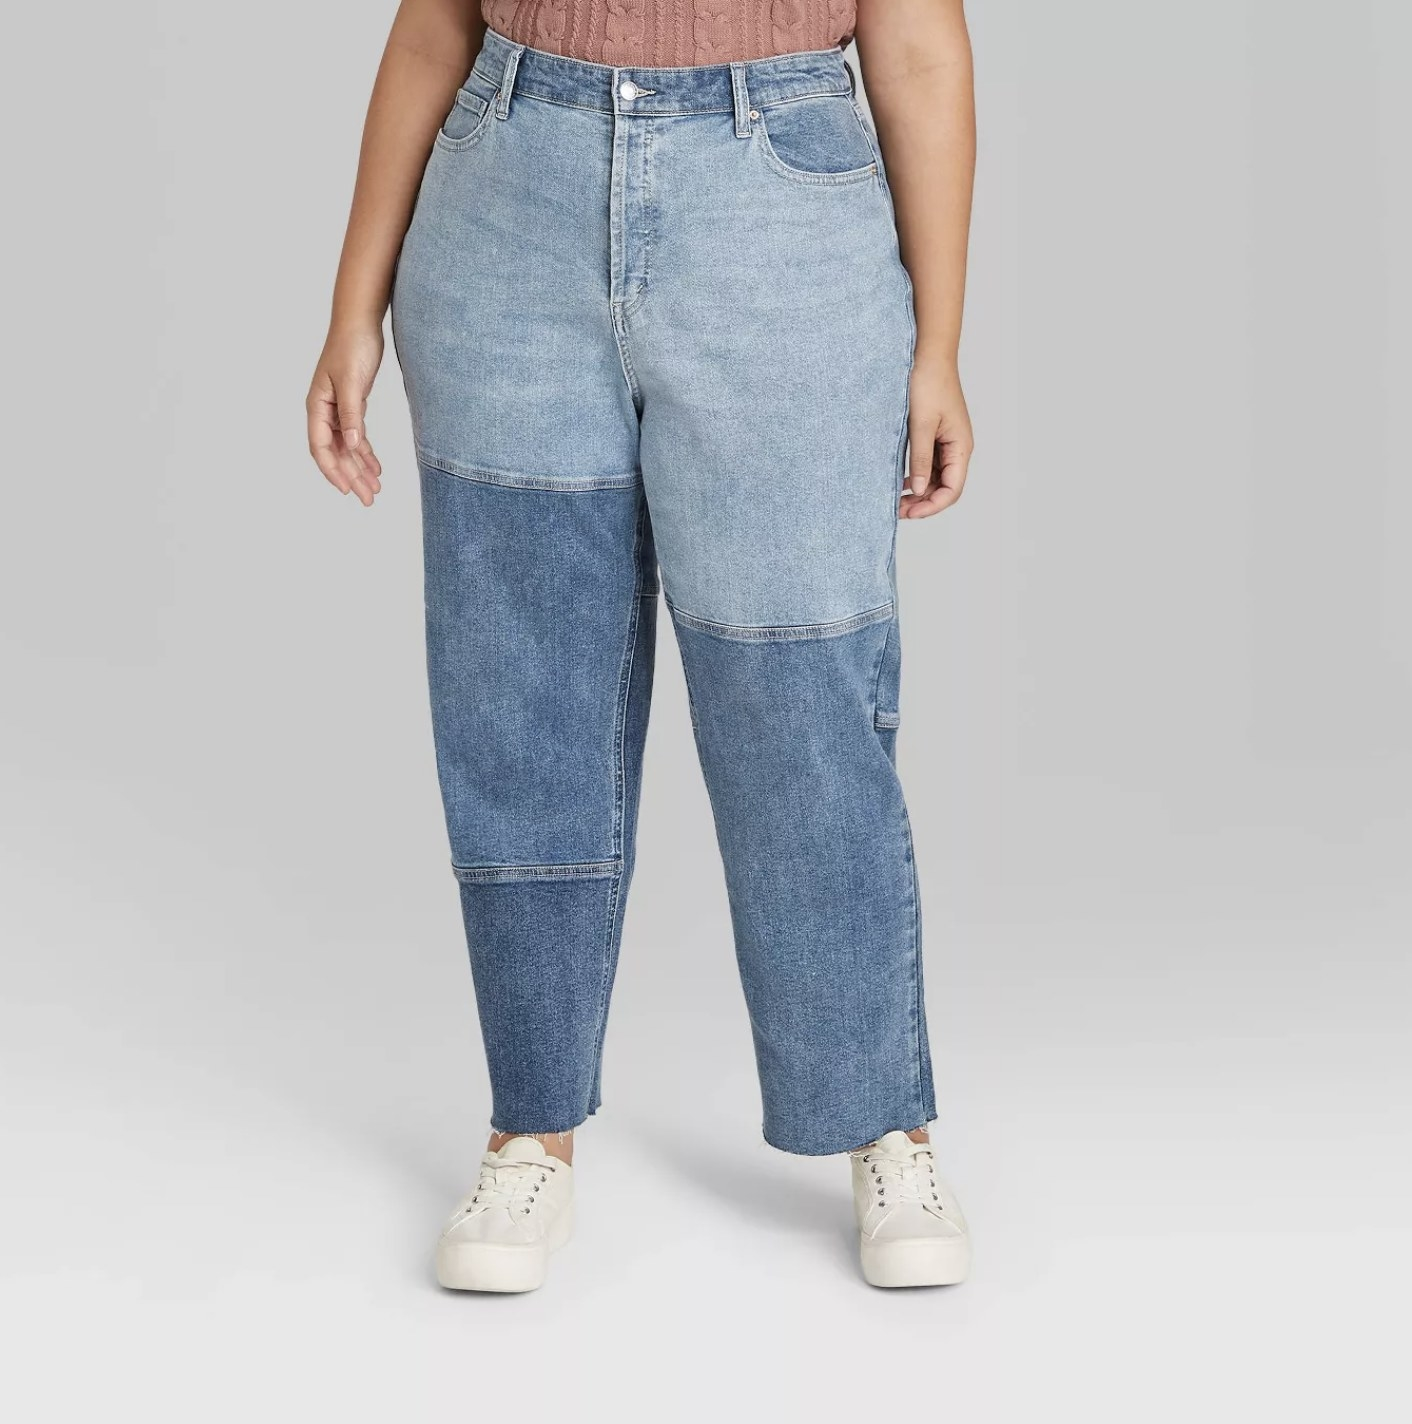 Model is wearing a pair of light-wash patchwork denim mom jeans